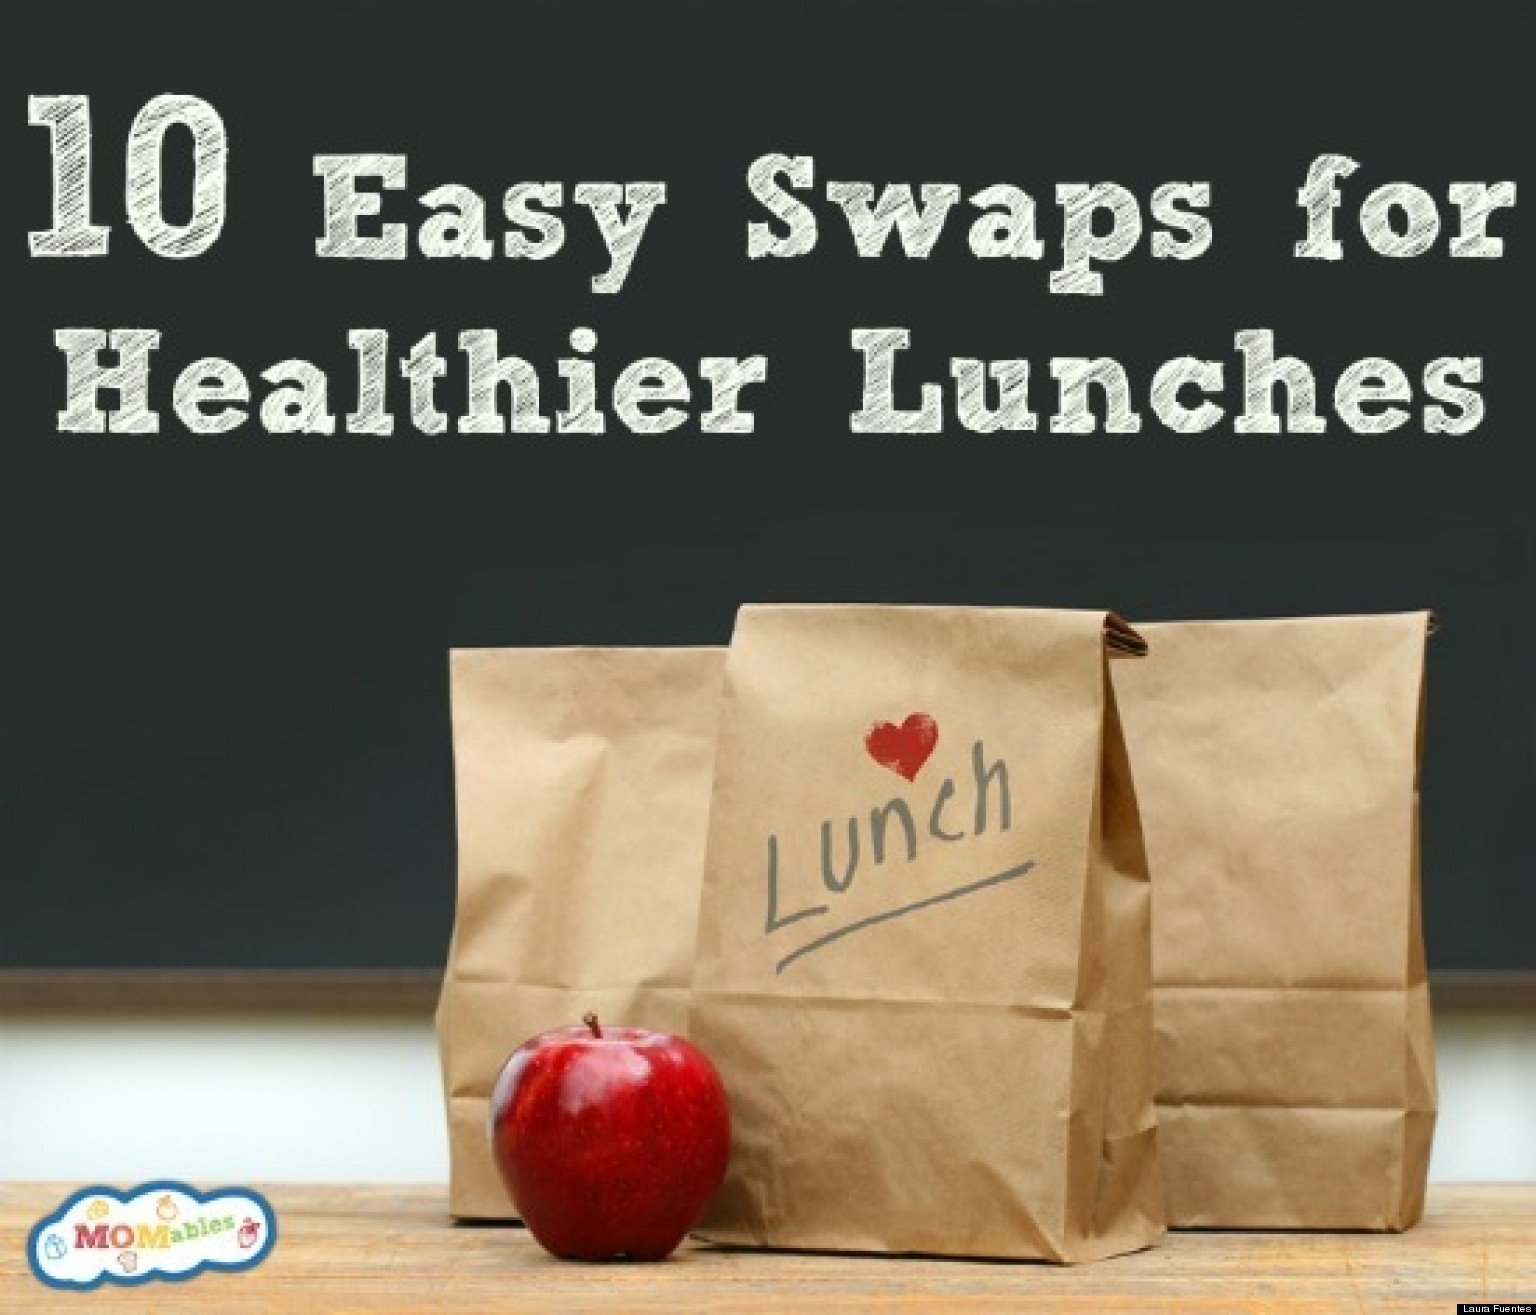 School Lunch Project: 10 Easy Swaps For Healthier Lunches